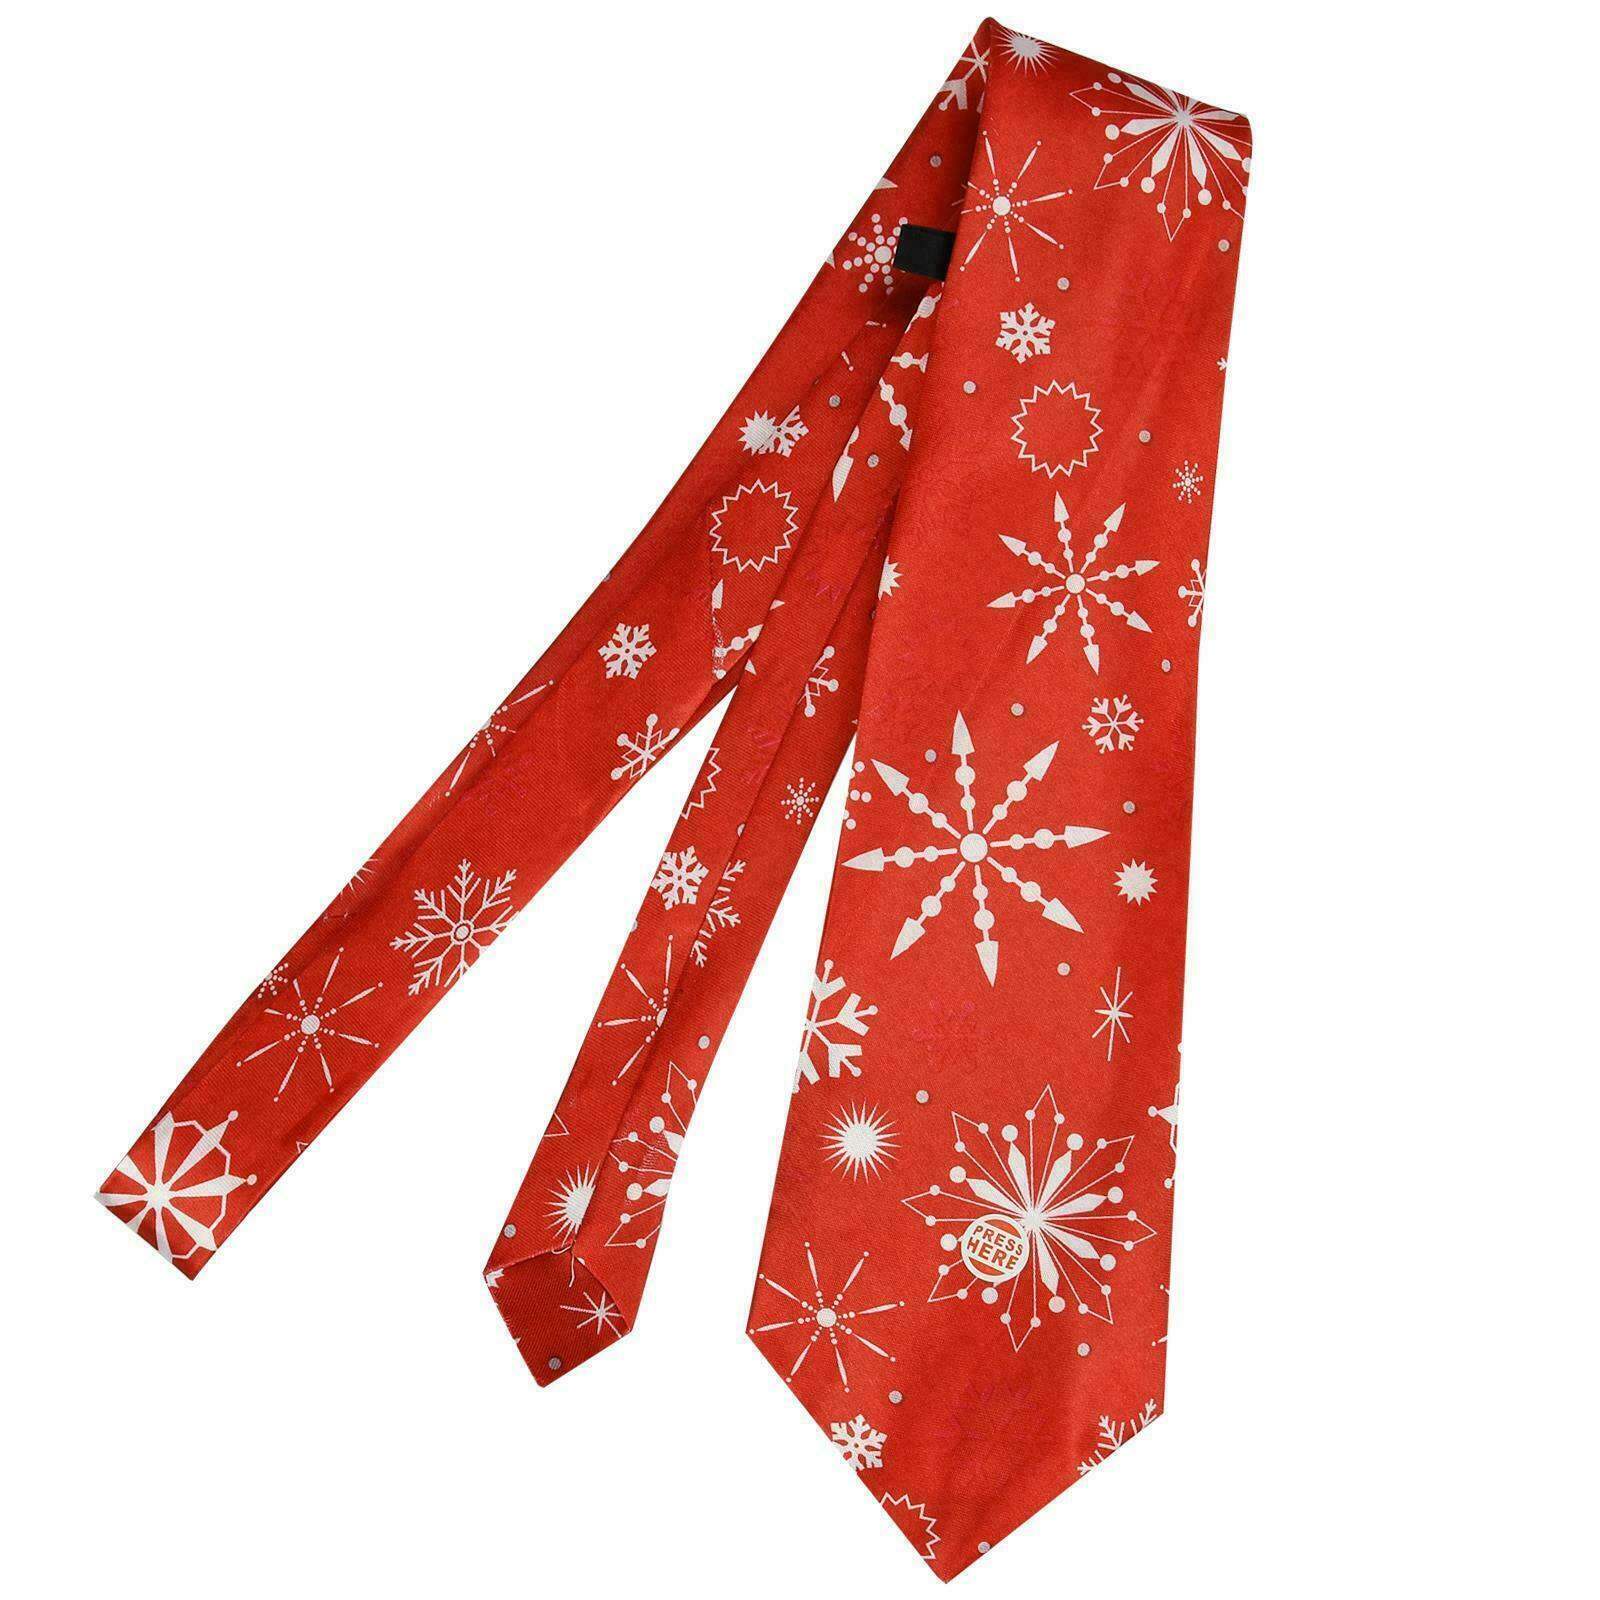 Christmas Musical Tie Novelty Xmas Tree Gift Office Staff Party RED SNOWFLAKES